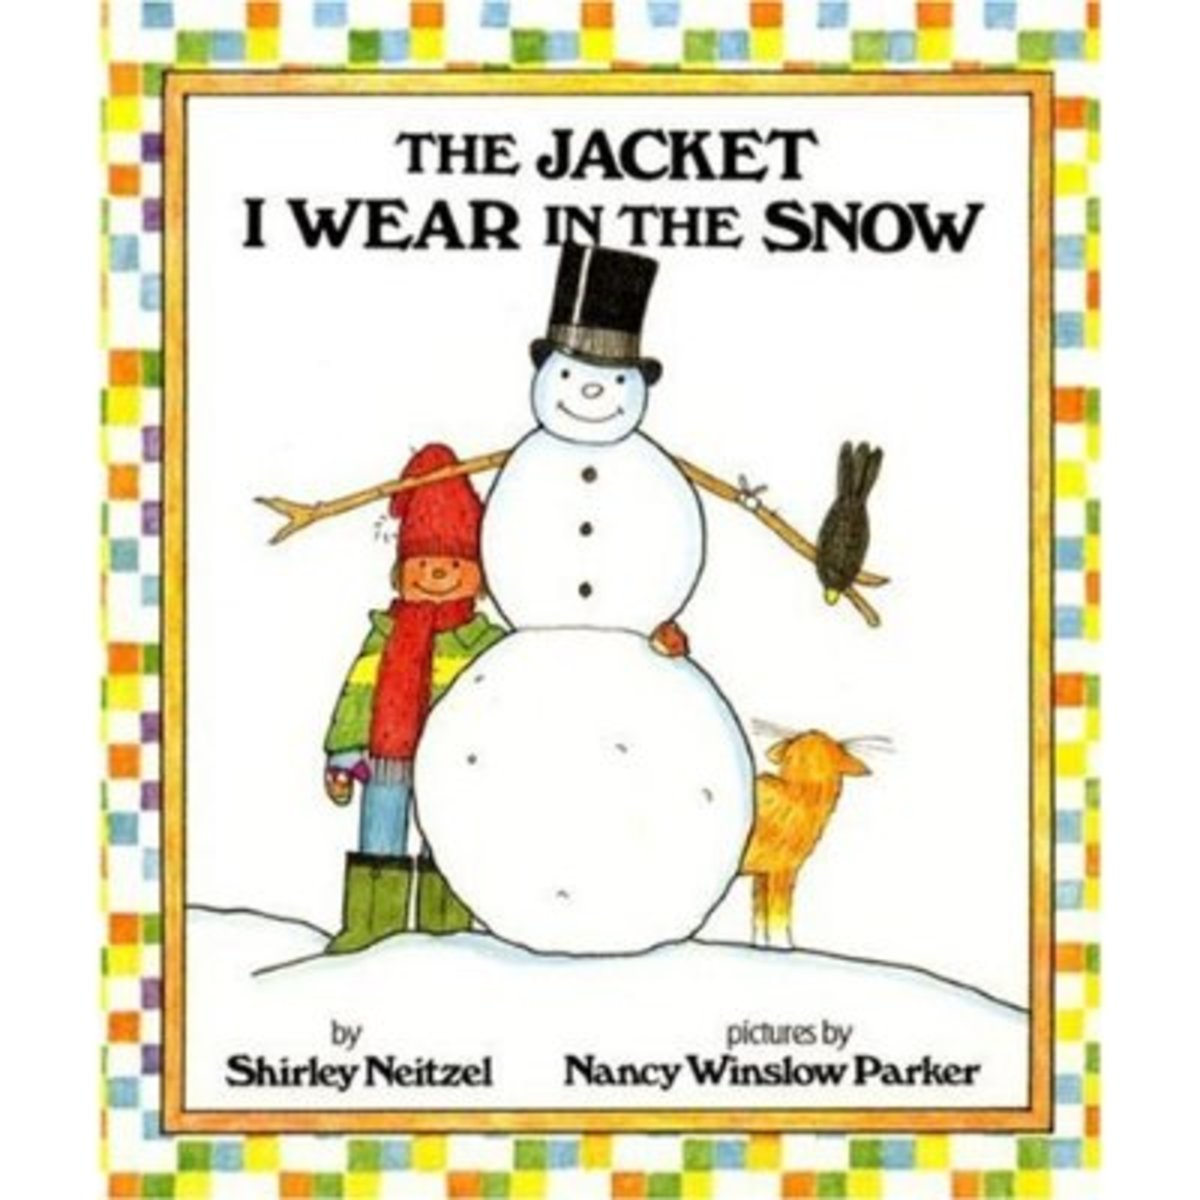 This book tells all the items a child needs to play in the snow. Young children can read along with the pictographs.